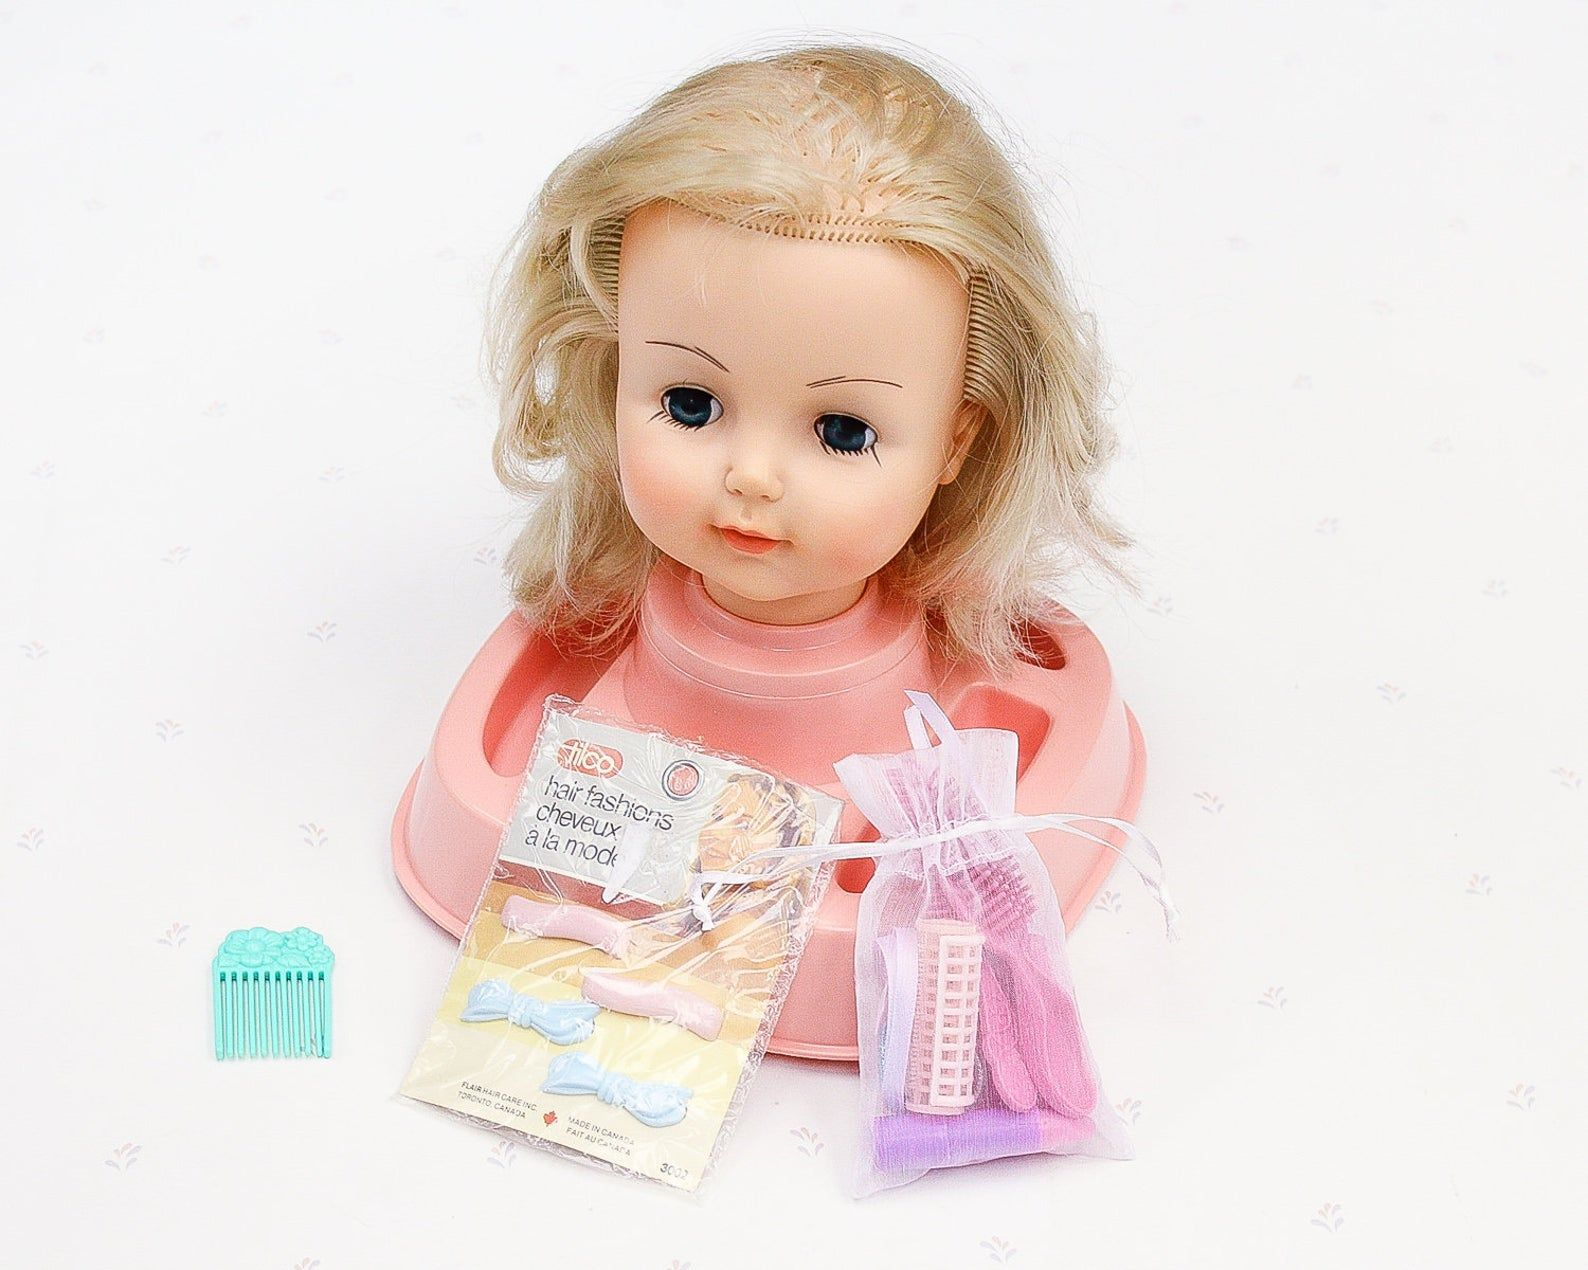 Reliable Doll Head Styling Center Doll Hair Styling Kit Vintage Girl Gift 70s Doll For Girl Doll Styling Girl Doll Vintage Doll In 2020 Doll Hair Doll Head Hair Styles